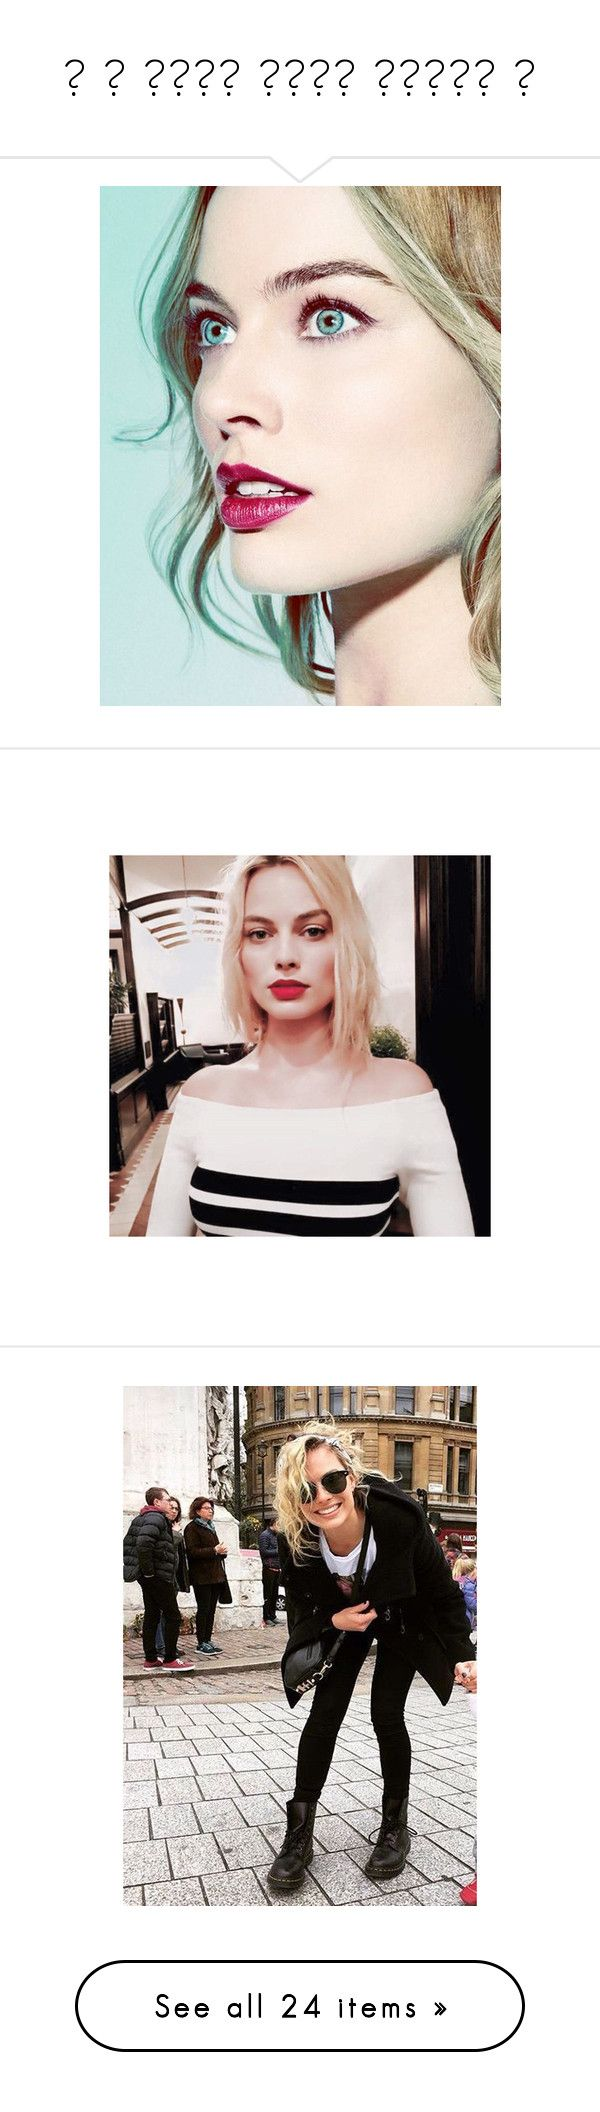 """➵ ᵃ ᶠᵃᶜᵉ ˡᶤᵏᵉ ᶜᵘᵖᶤᵈ ➵"" by plant0sensei ❤ liked on Polyvore featuring margot robbie, girls, pictures, home, home decor and backgrounds"